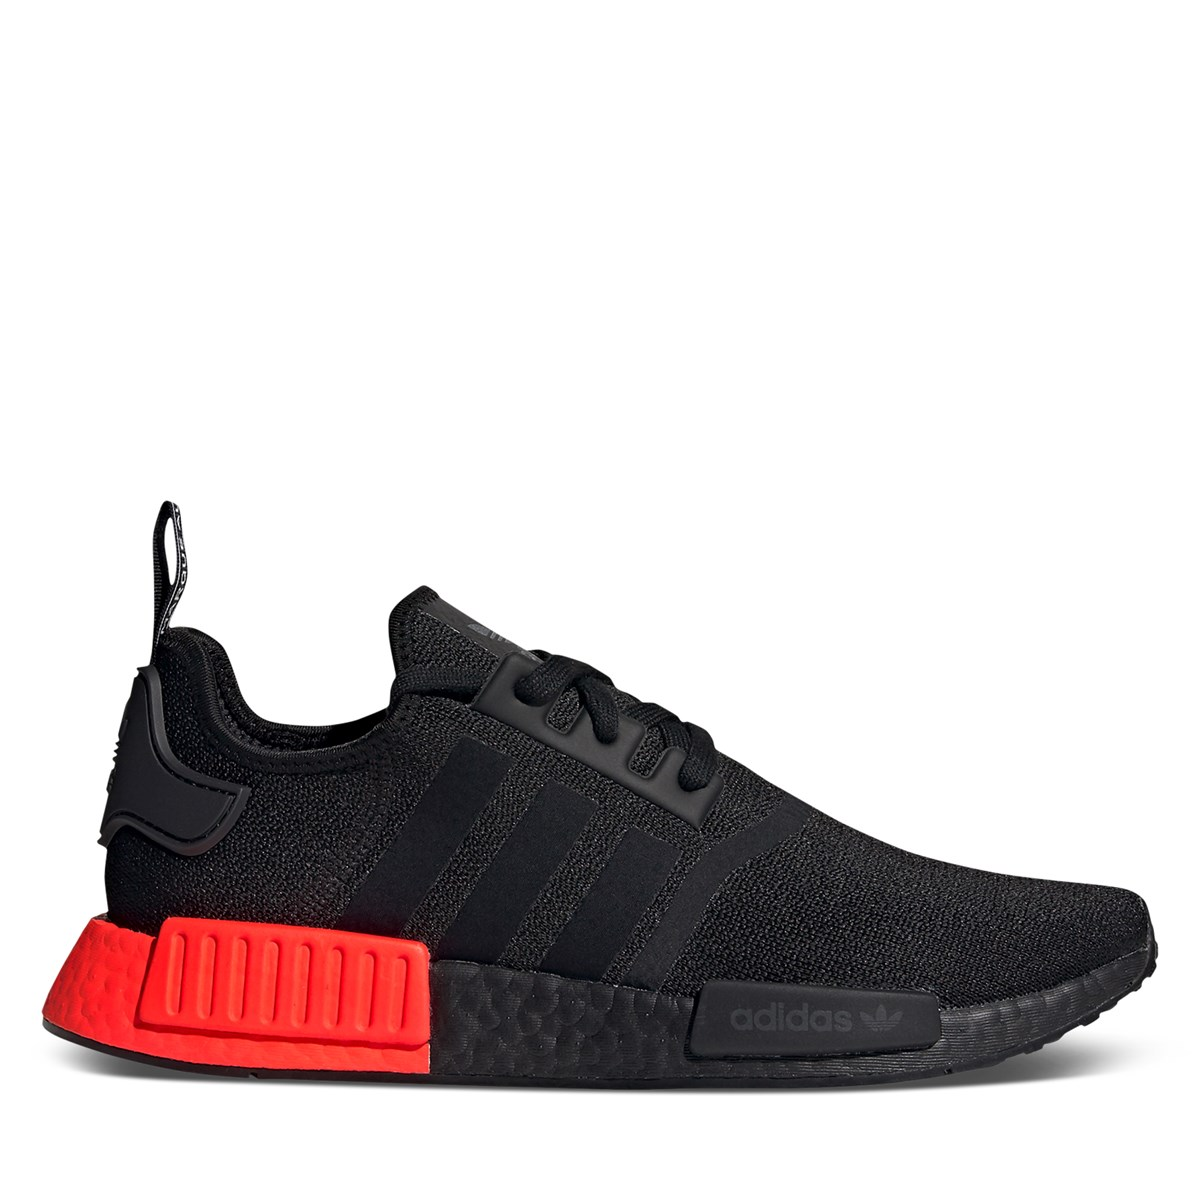 Men's NMD R1 Sneakers in Red/Black